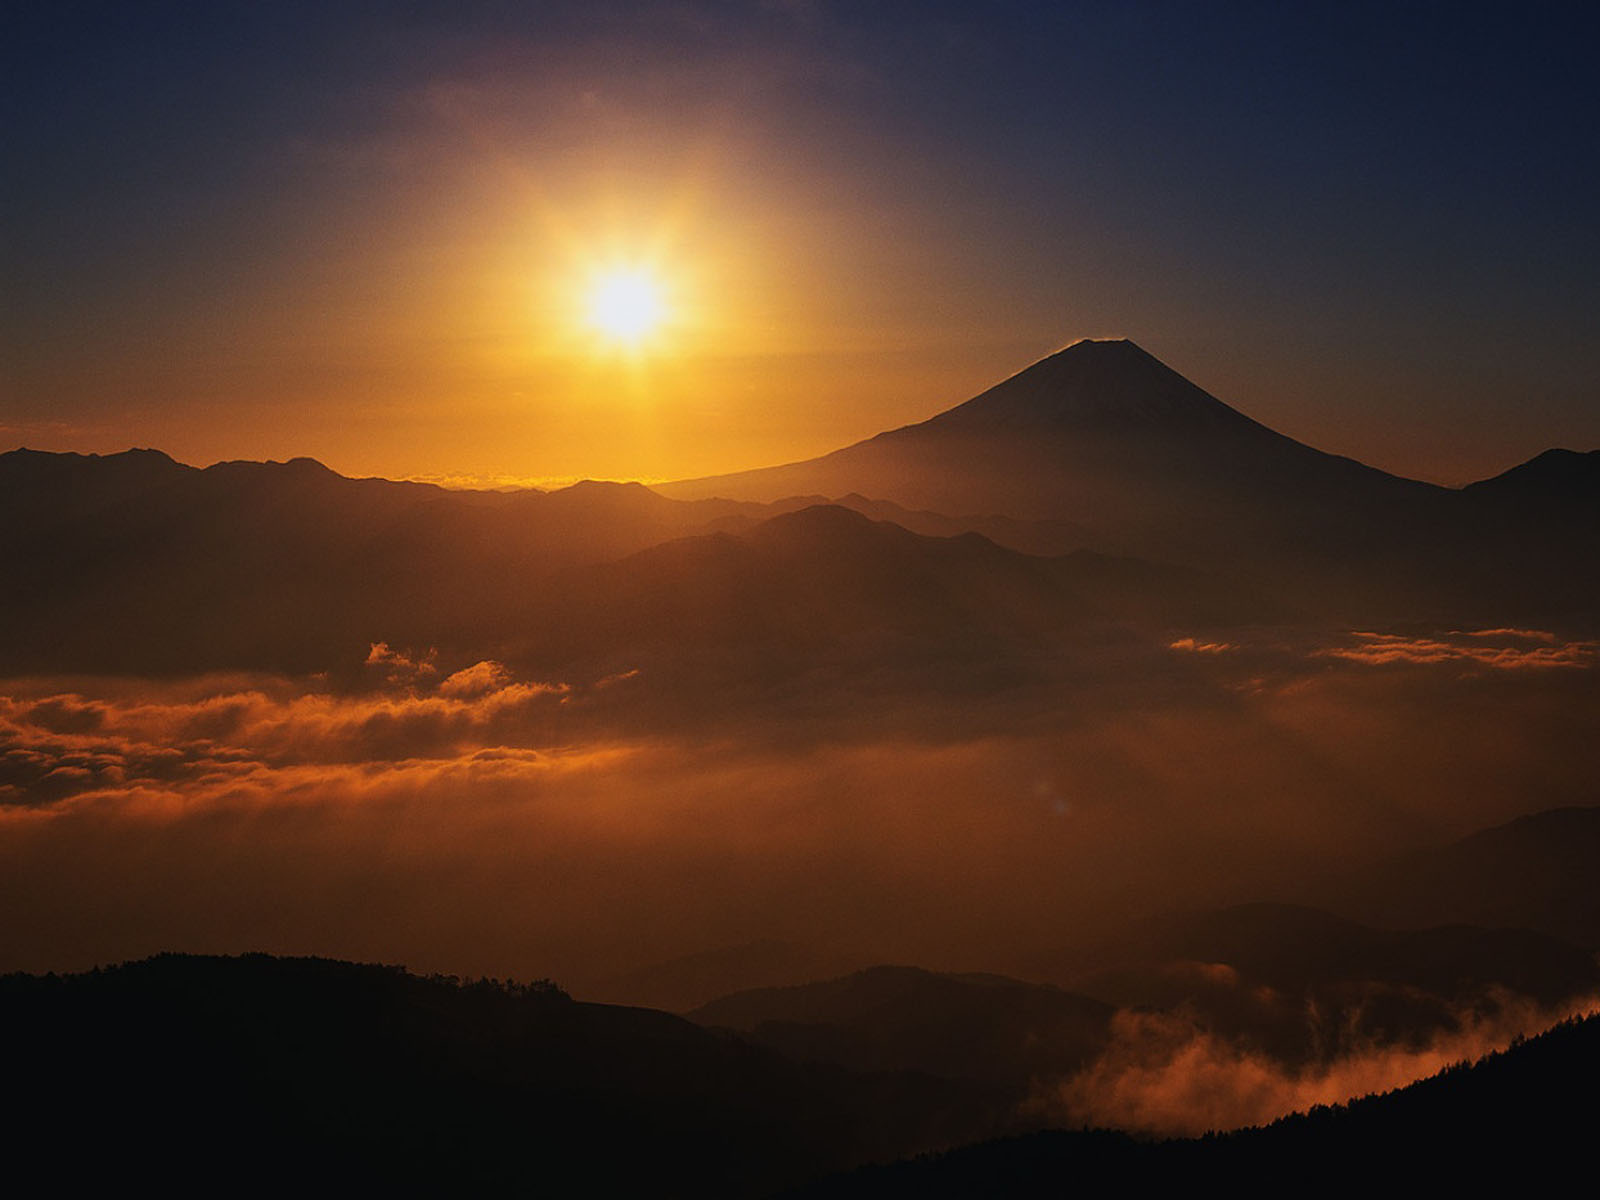 Free Download Wallpapers Mountain Sunrise Wallpapers 1600x1200